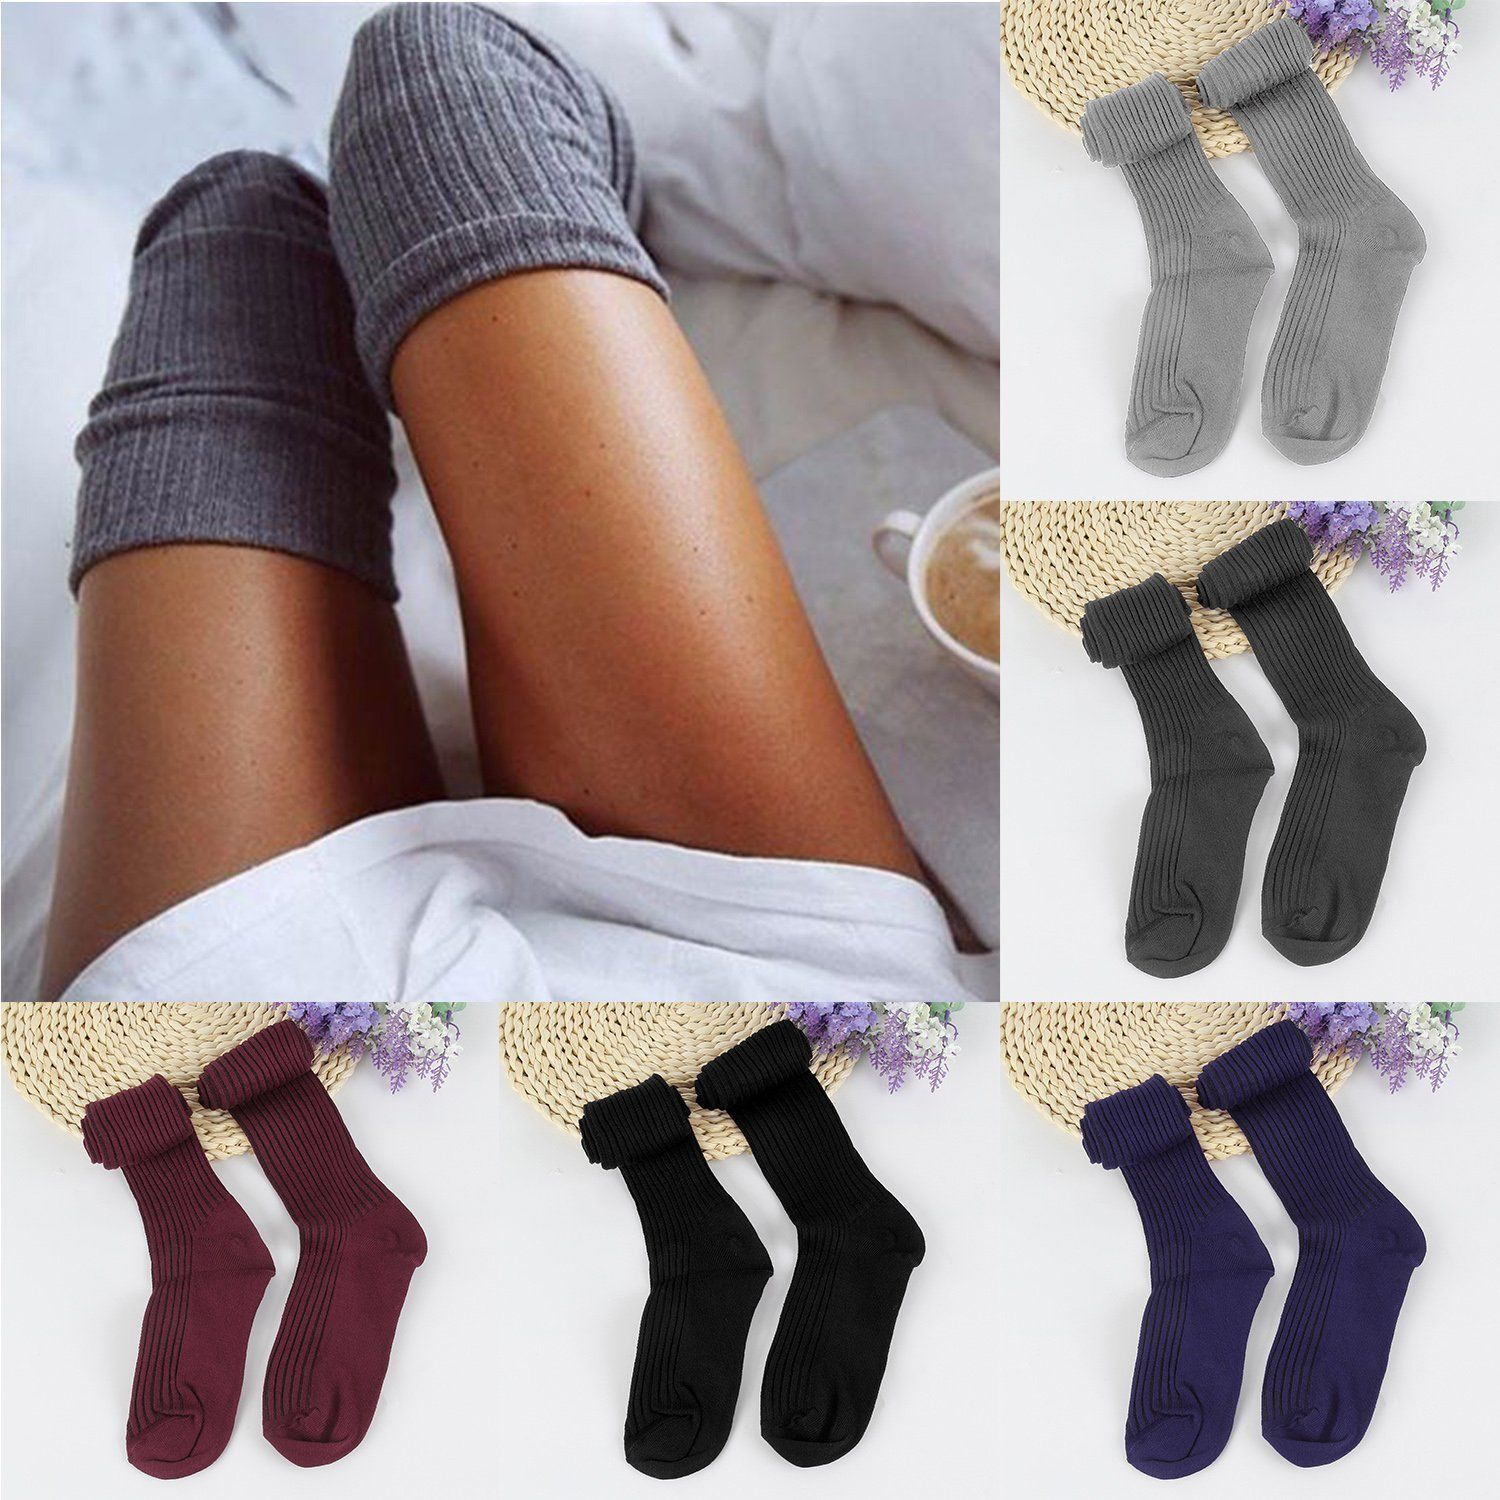 96829920d Women Lady Wool Warm Knit Over Knee Thigh High Stockings Socks Pantyhose  Tights